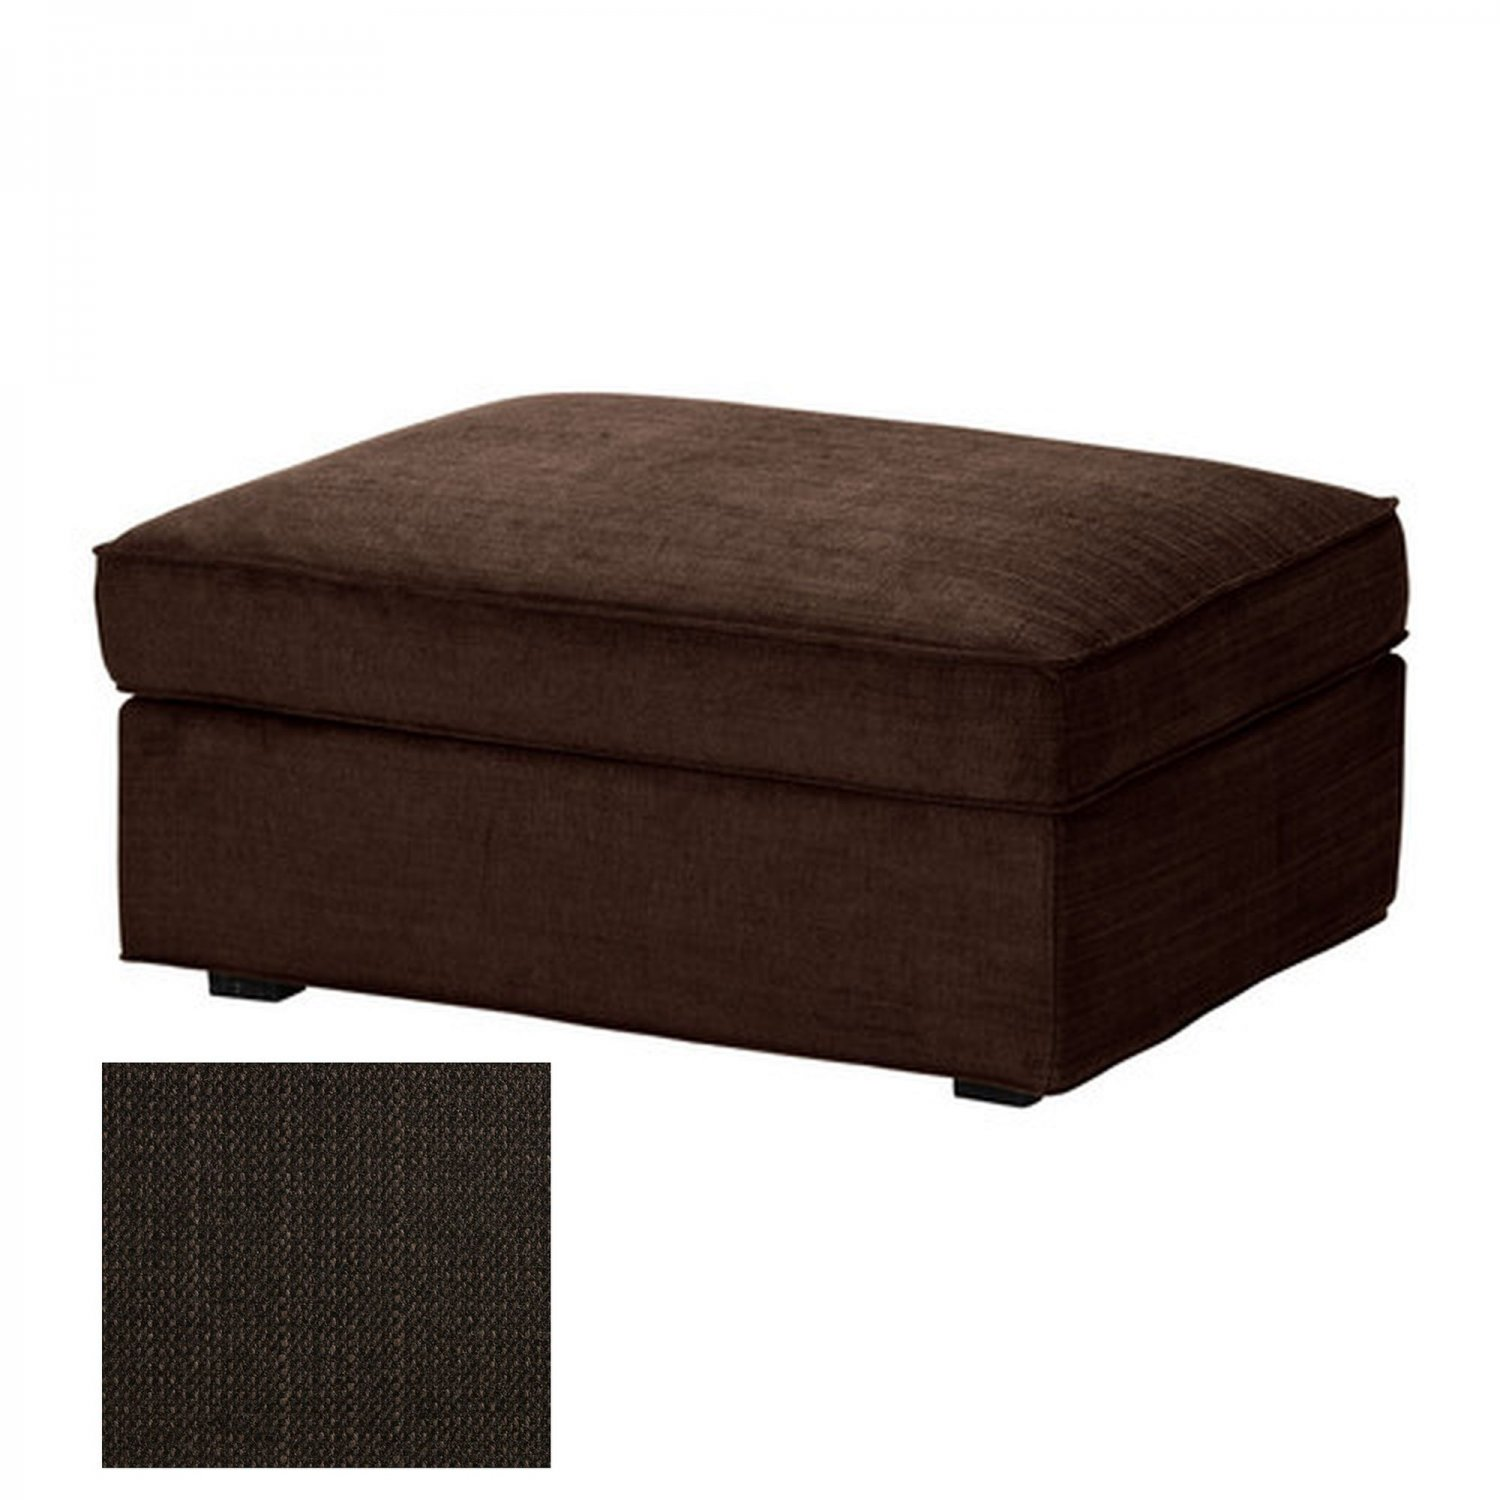 ikea kivik footstool slipcover ottoman cover tullinge dark brown bezug housse. Black Bedroom Furniture Sets. Home Design Ideas